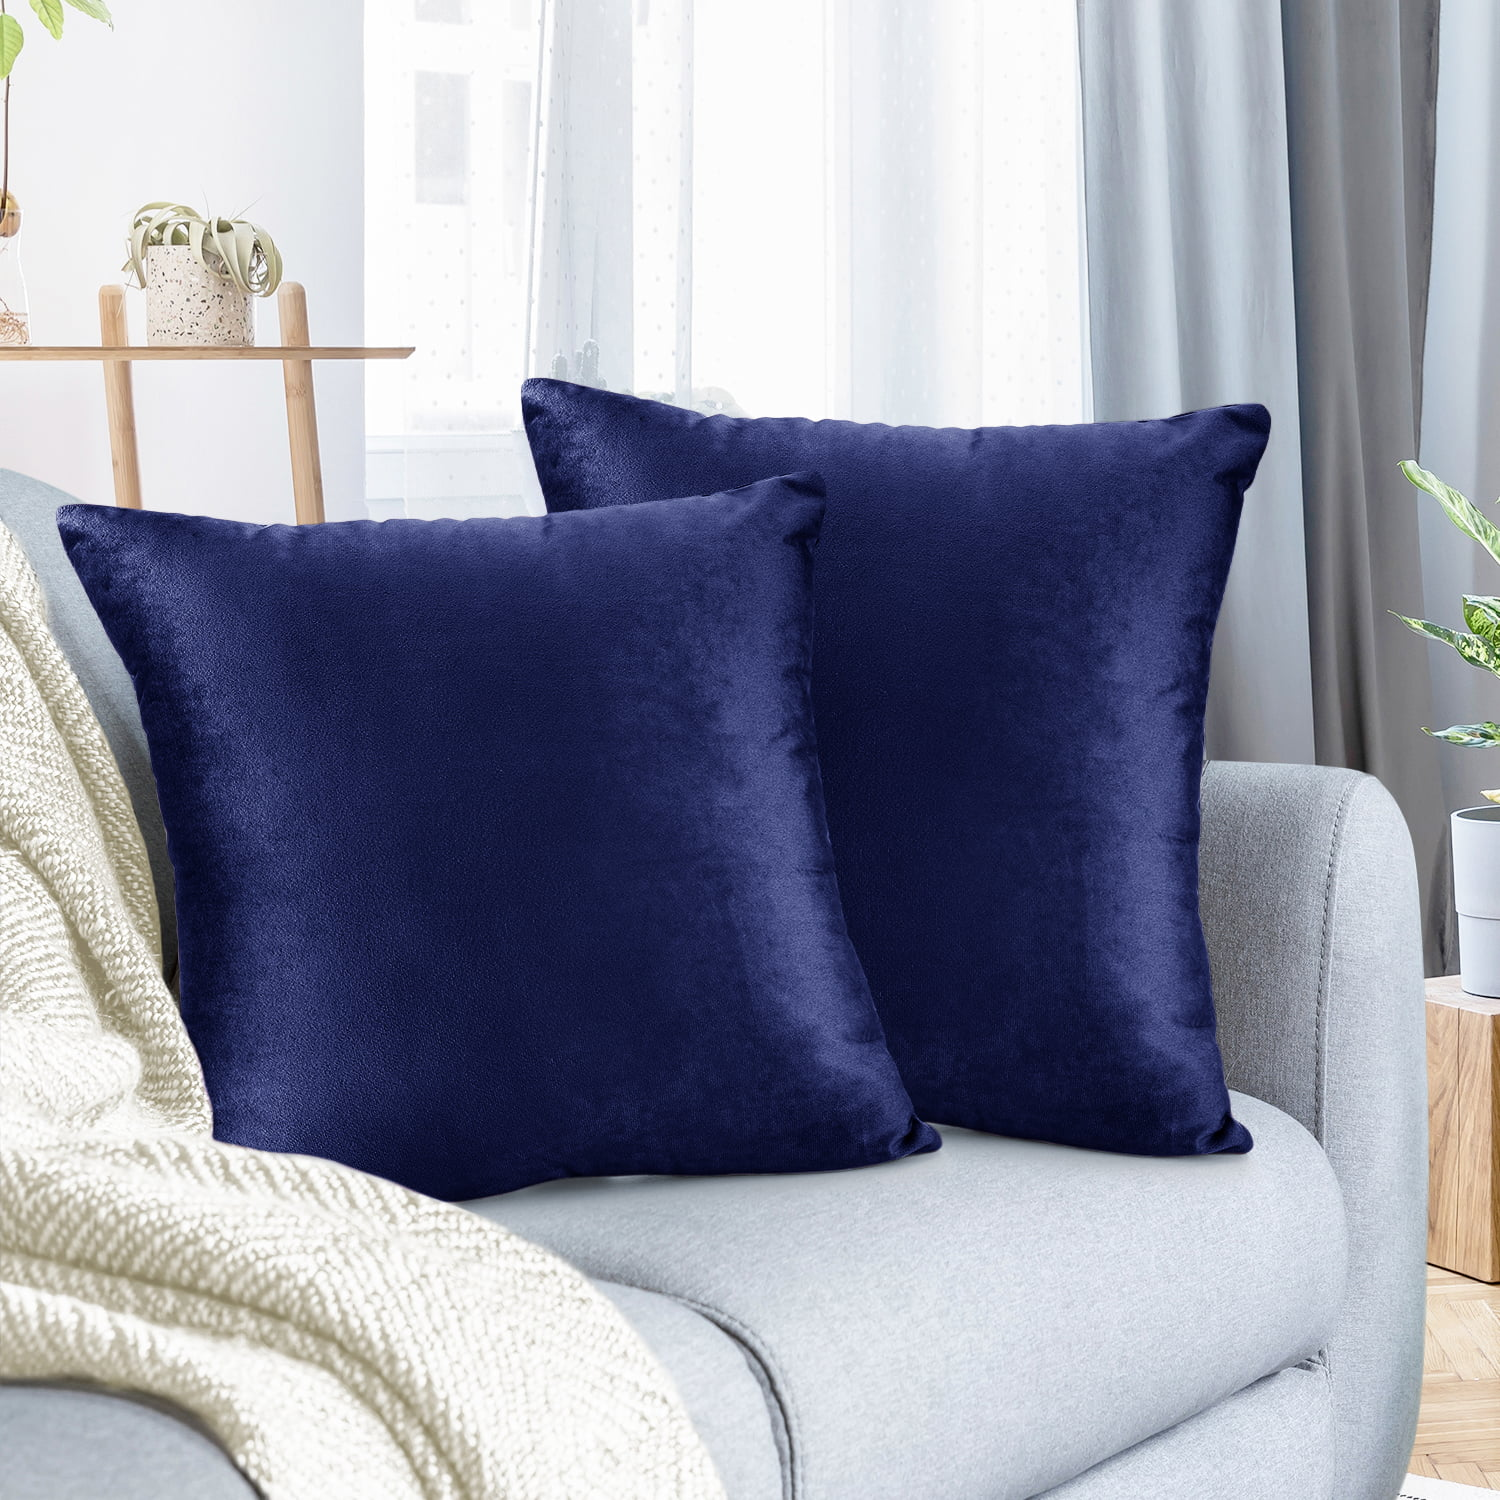 pack of 2 velvet throw pillow covers decorative soft square cushion cover 22 x 22 walmart com